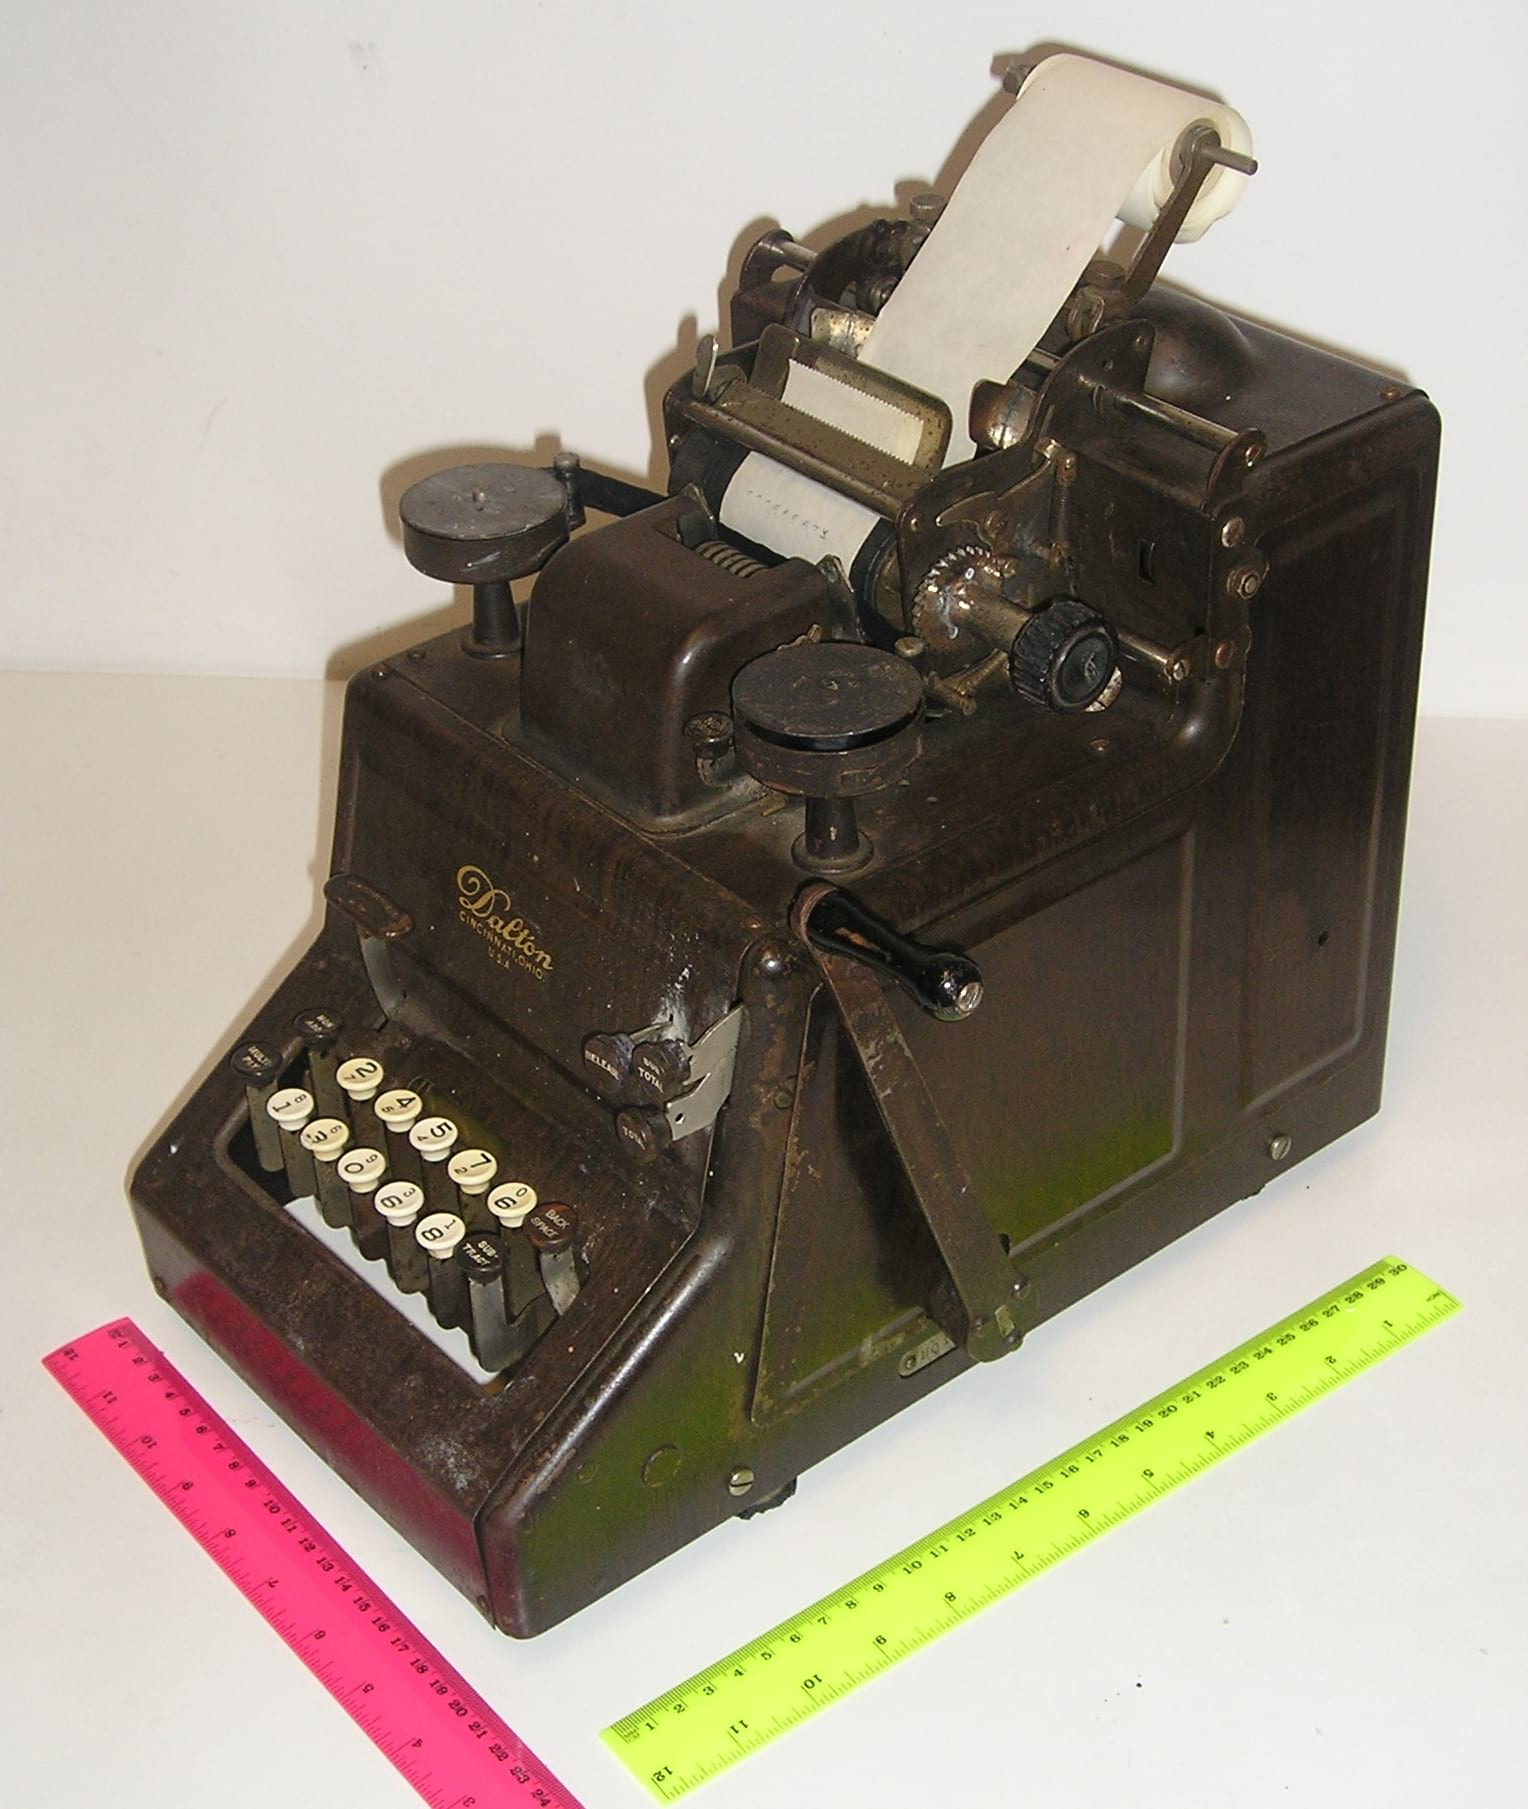 What Is An Old Fashioned Adding Machine Called